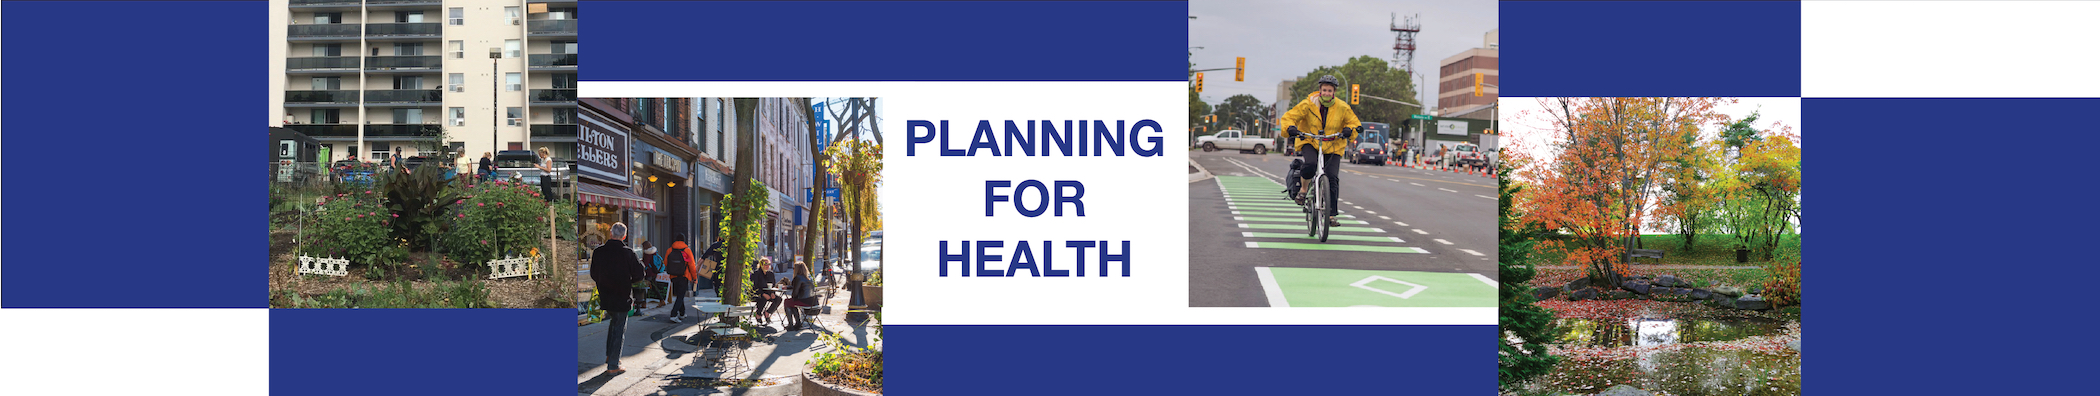 Planning for Health